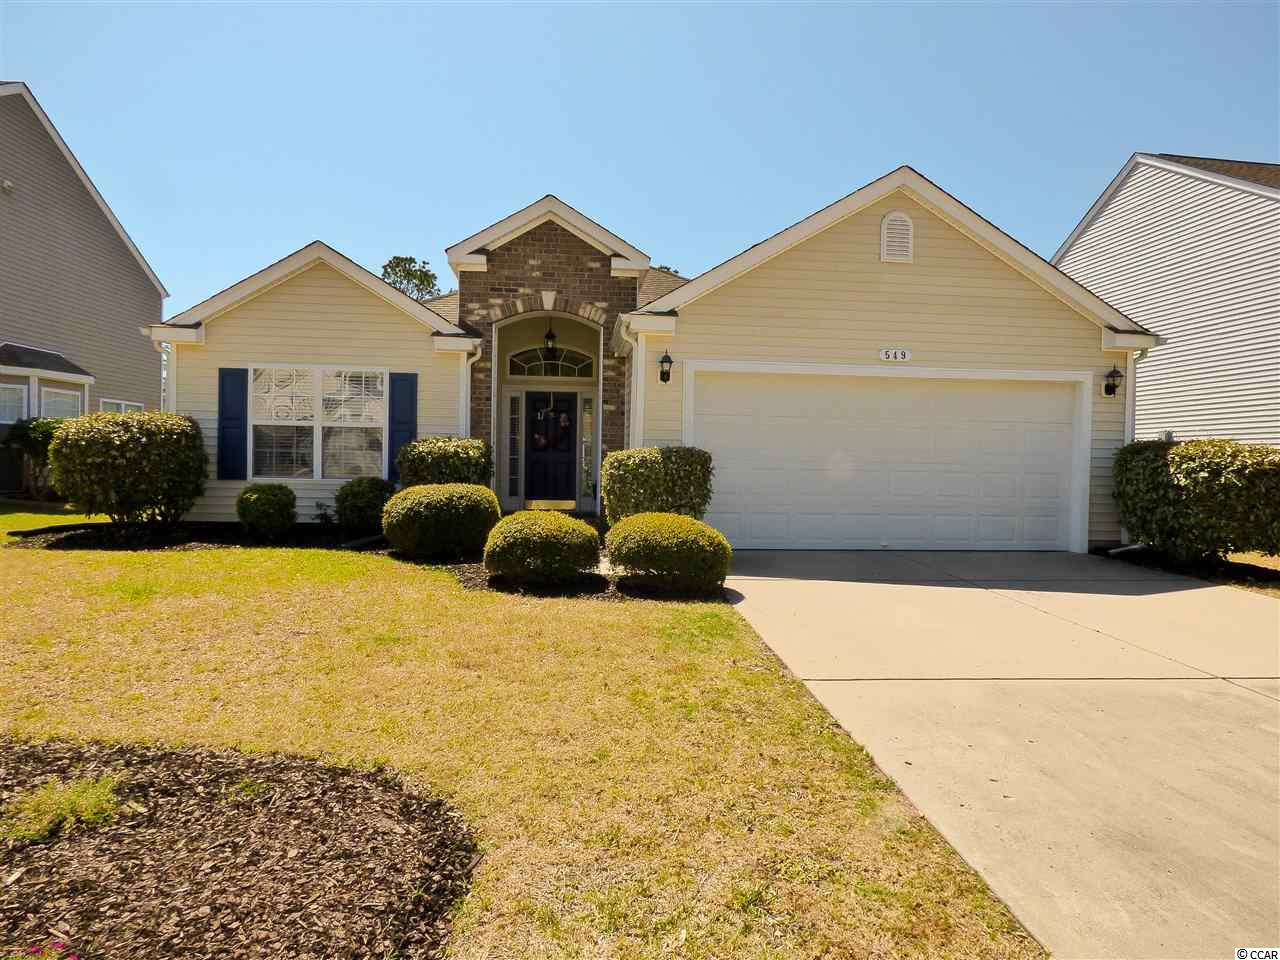 Fantastic move in ready 3 bedroom 2 bath home in The Farm. Open and spacious Eaton floor plan with brick accents and large Master Suite. Upgrades include stainless appliances, ceiling fans throughout, covered Lanai,and a fenced in private backyard overlooking a lake and wooded preserve area. Community amenities include an 8,000 square foot pool overlooking a lake, a large playground area, and basket ball court The clubhouse offers a large area for social gathering as well as a fitness center and ping pong tables. Just minutes to all the area has to offer, beach, shopping, dining, golf, entertainment and more.